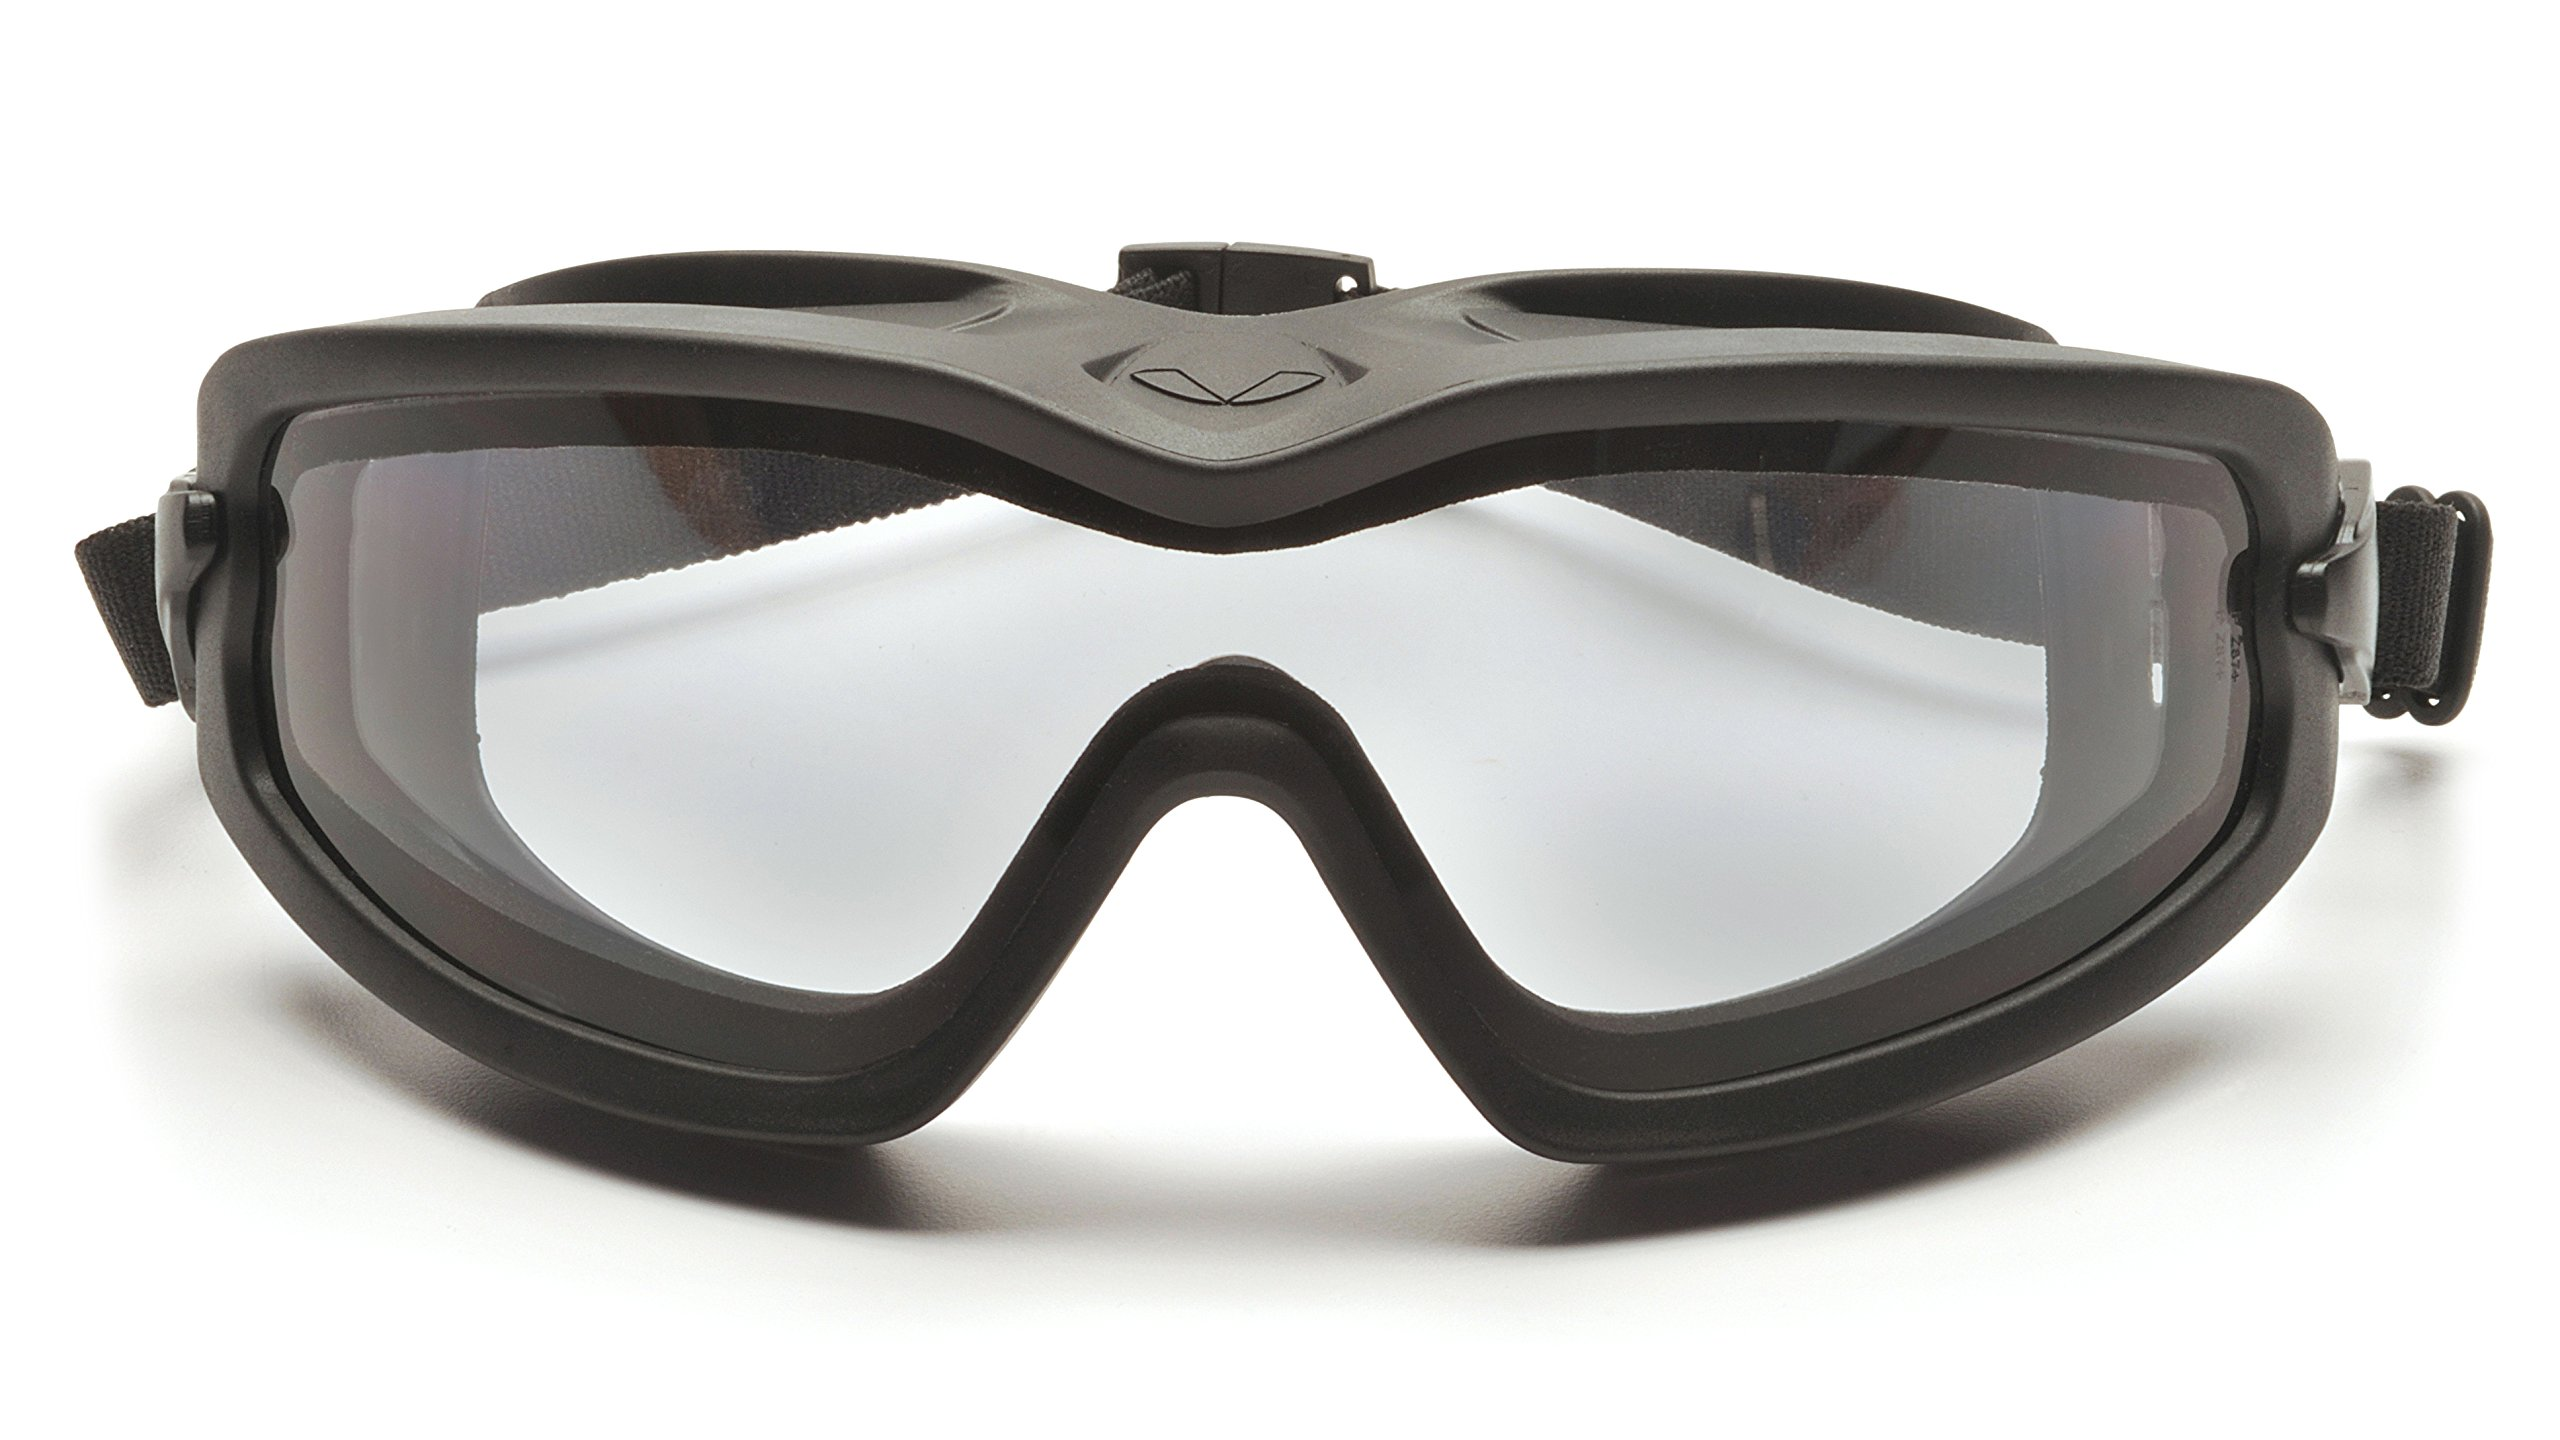 Pyramex V2G Safety Goggles with Adjustable Strap, Black Frame, Dual Clear H2X Anti-Fog Lens by Pyramex Safety (Image #4)